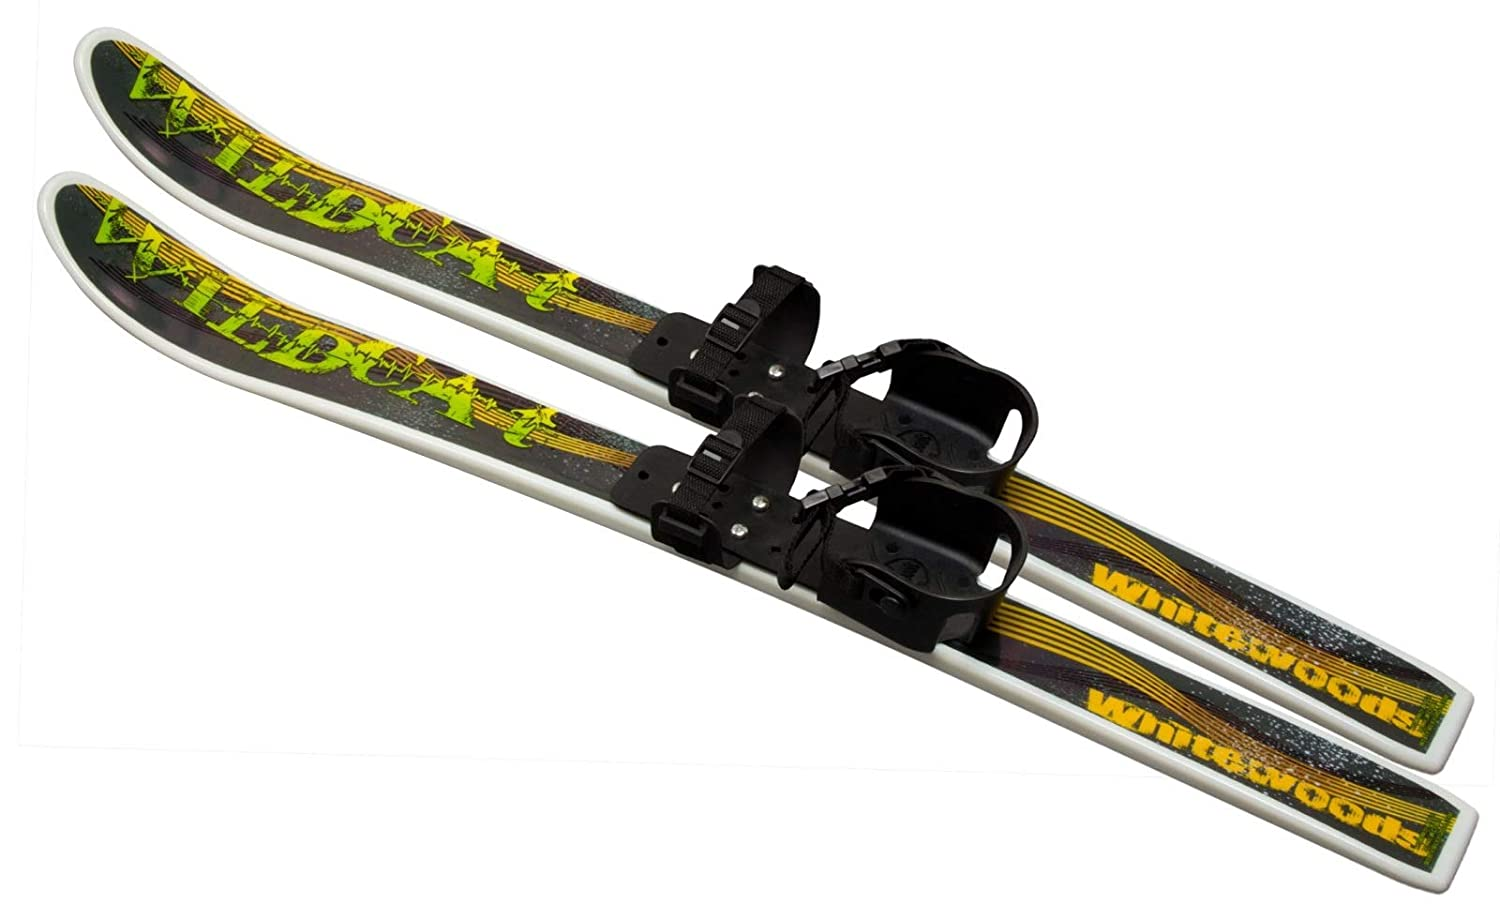 Cross Country Skis For Sale Ebay >> Whitewoods By Erik Sports Wildcat 95cm Junior Cross Country Backyard Ski Set Waxless Base Ages 4 8